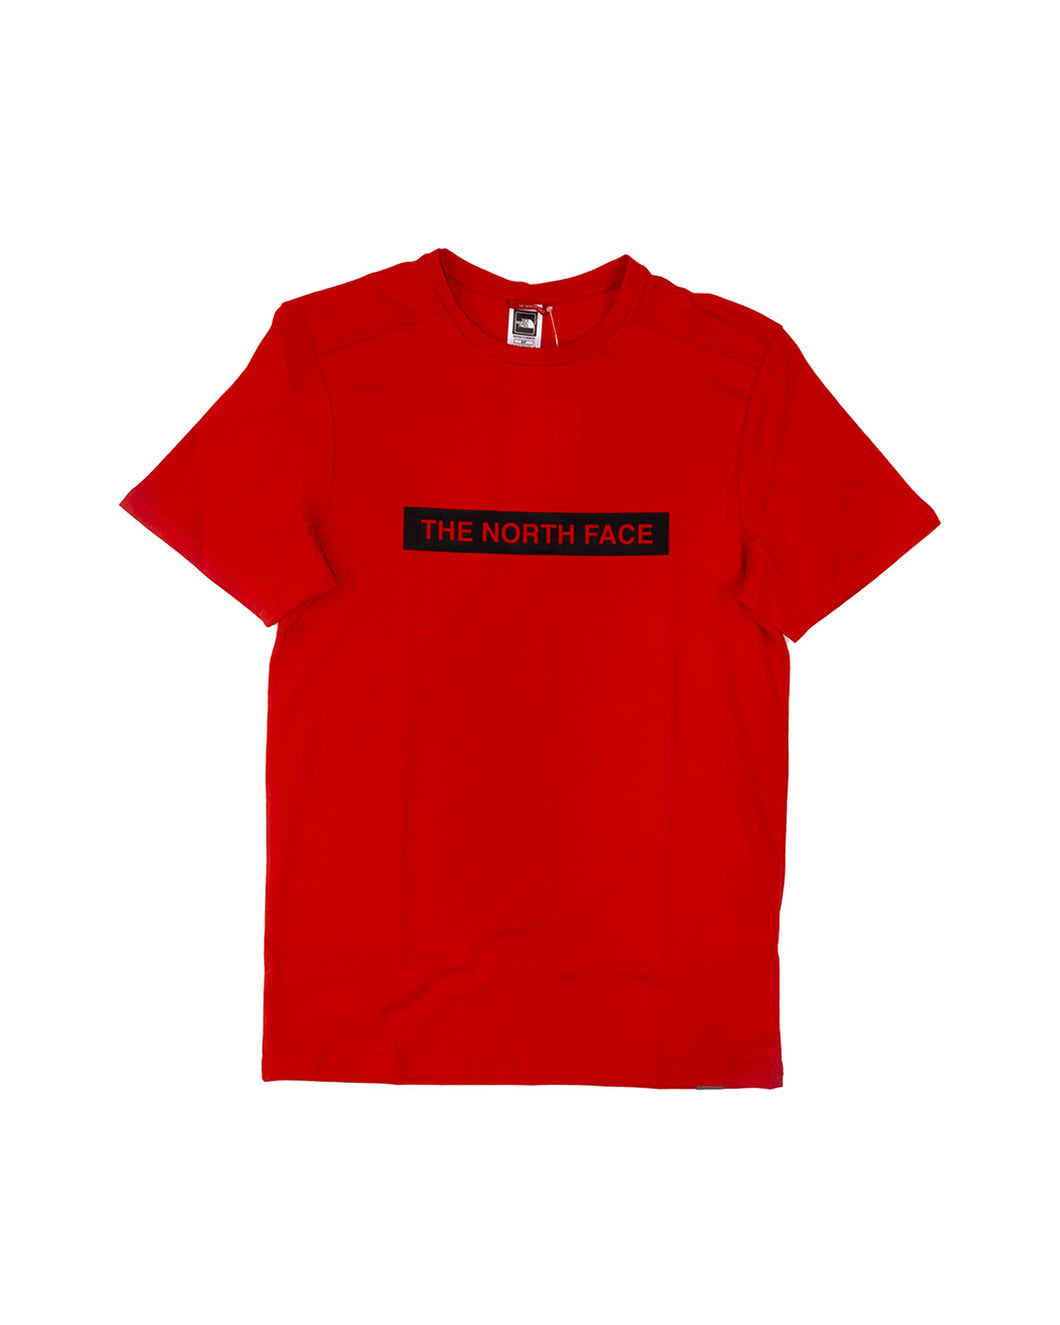 The North Face T-Shirt Light Tee Fiery Red